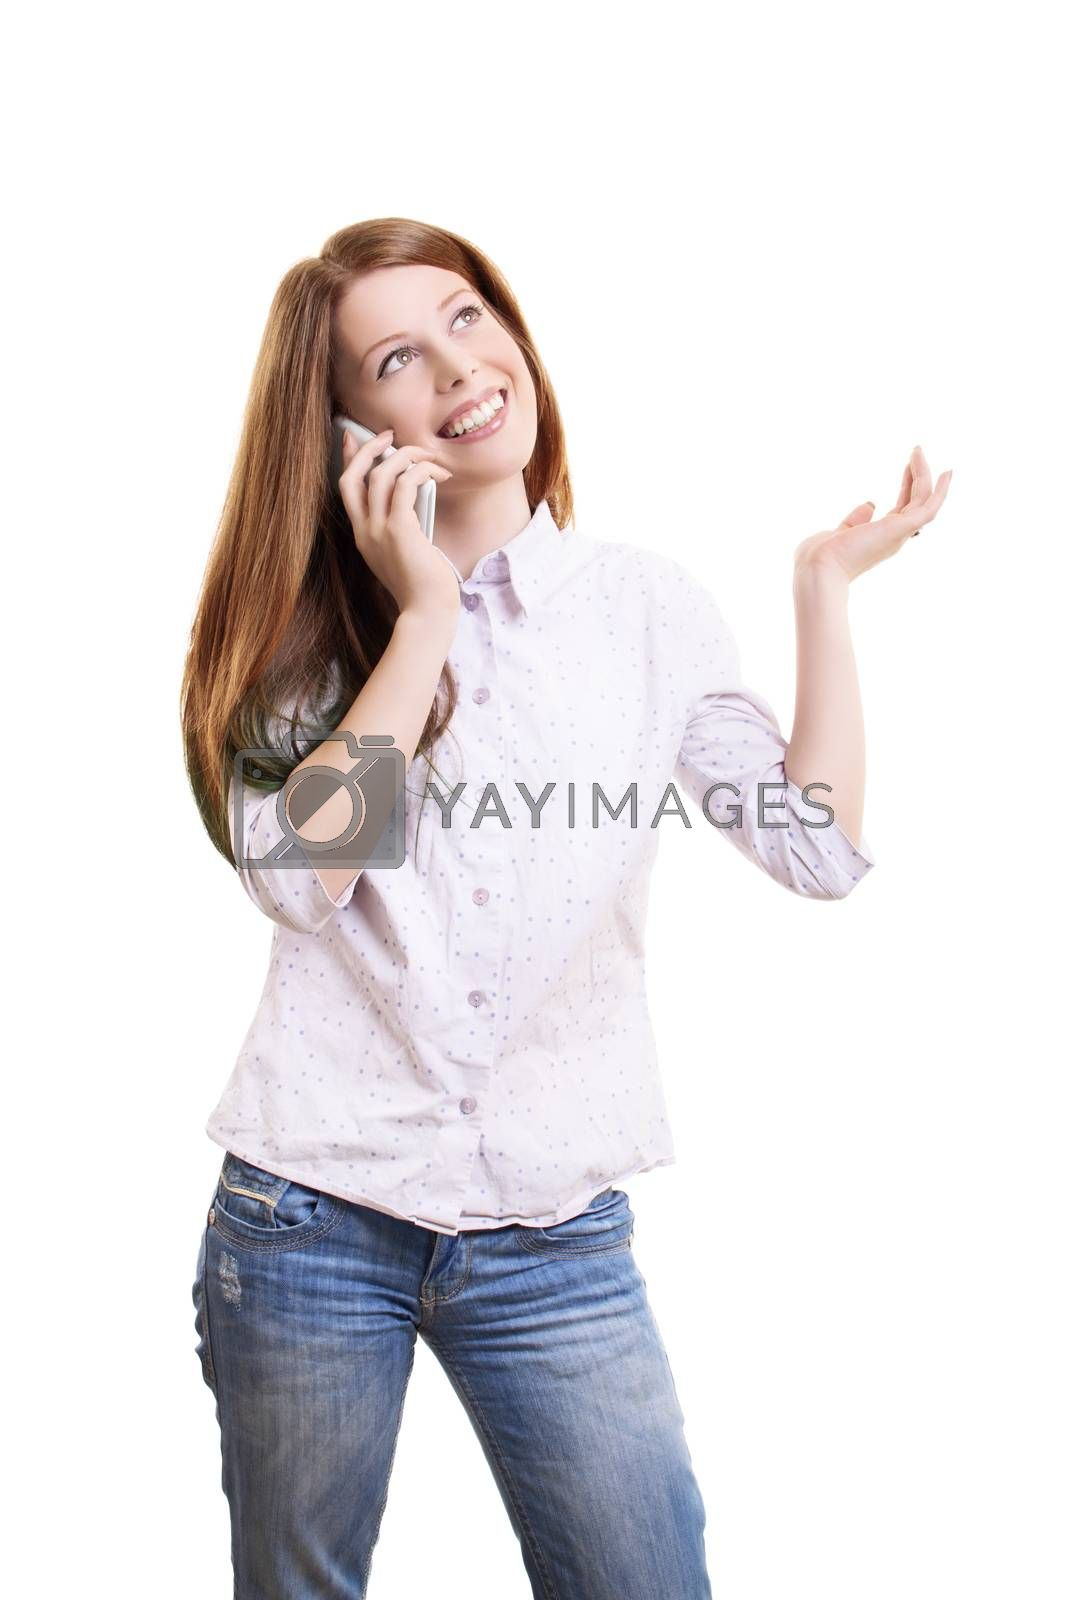 Smiling beautiful young woman in casual clothing talking on a phone and gesturing with one hand, isolated on white background.